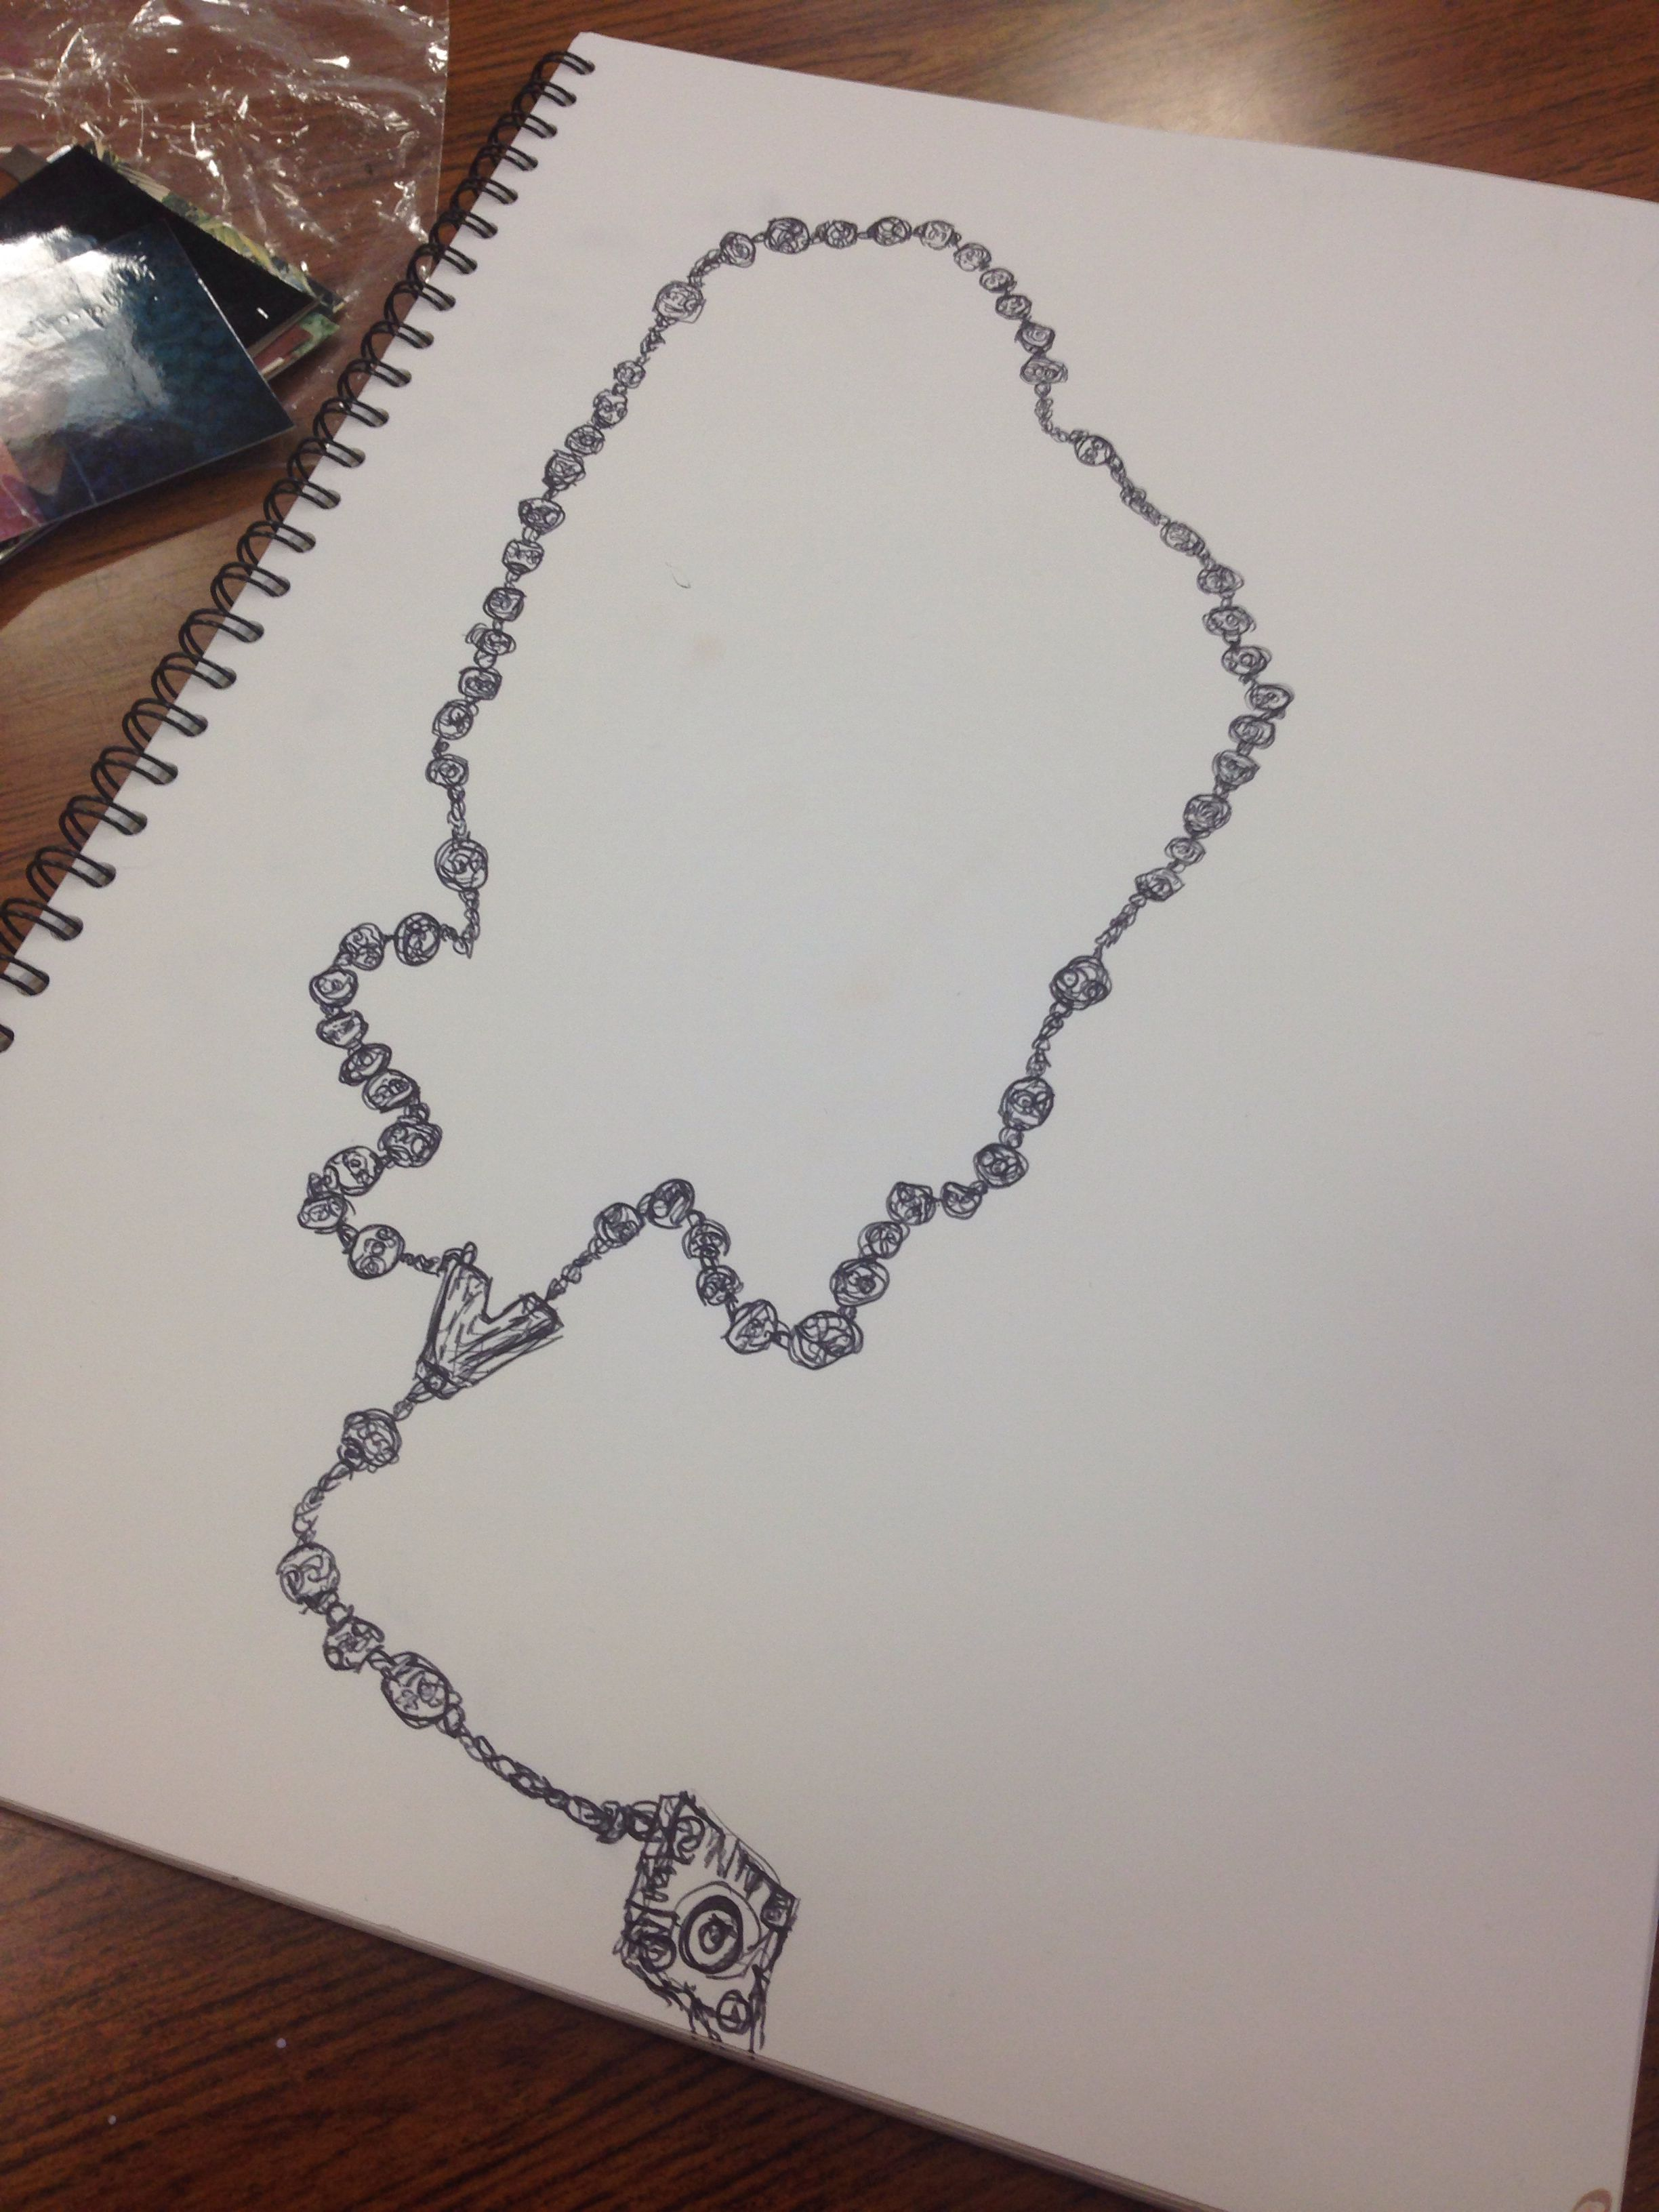 Rosary Bead Drawing I Did My Art Work